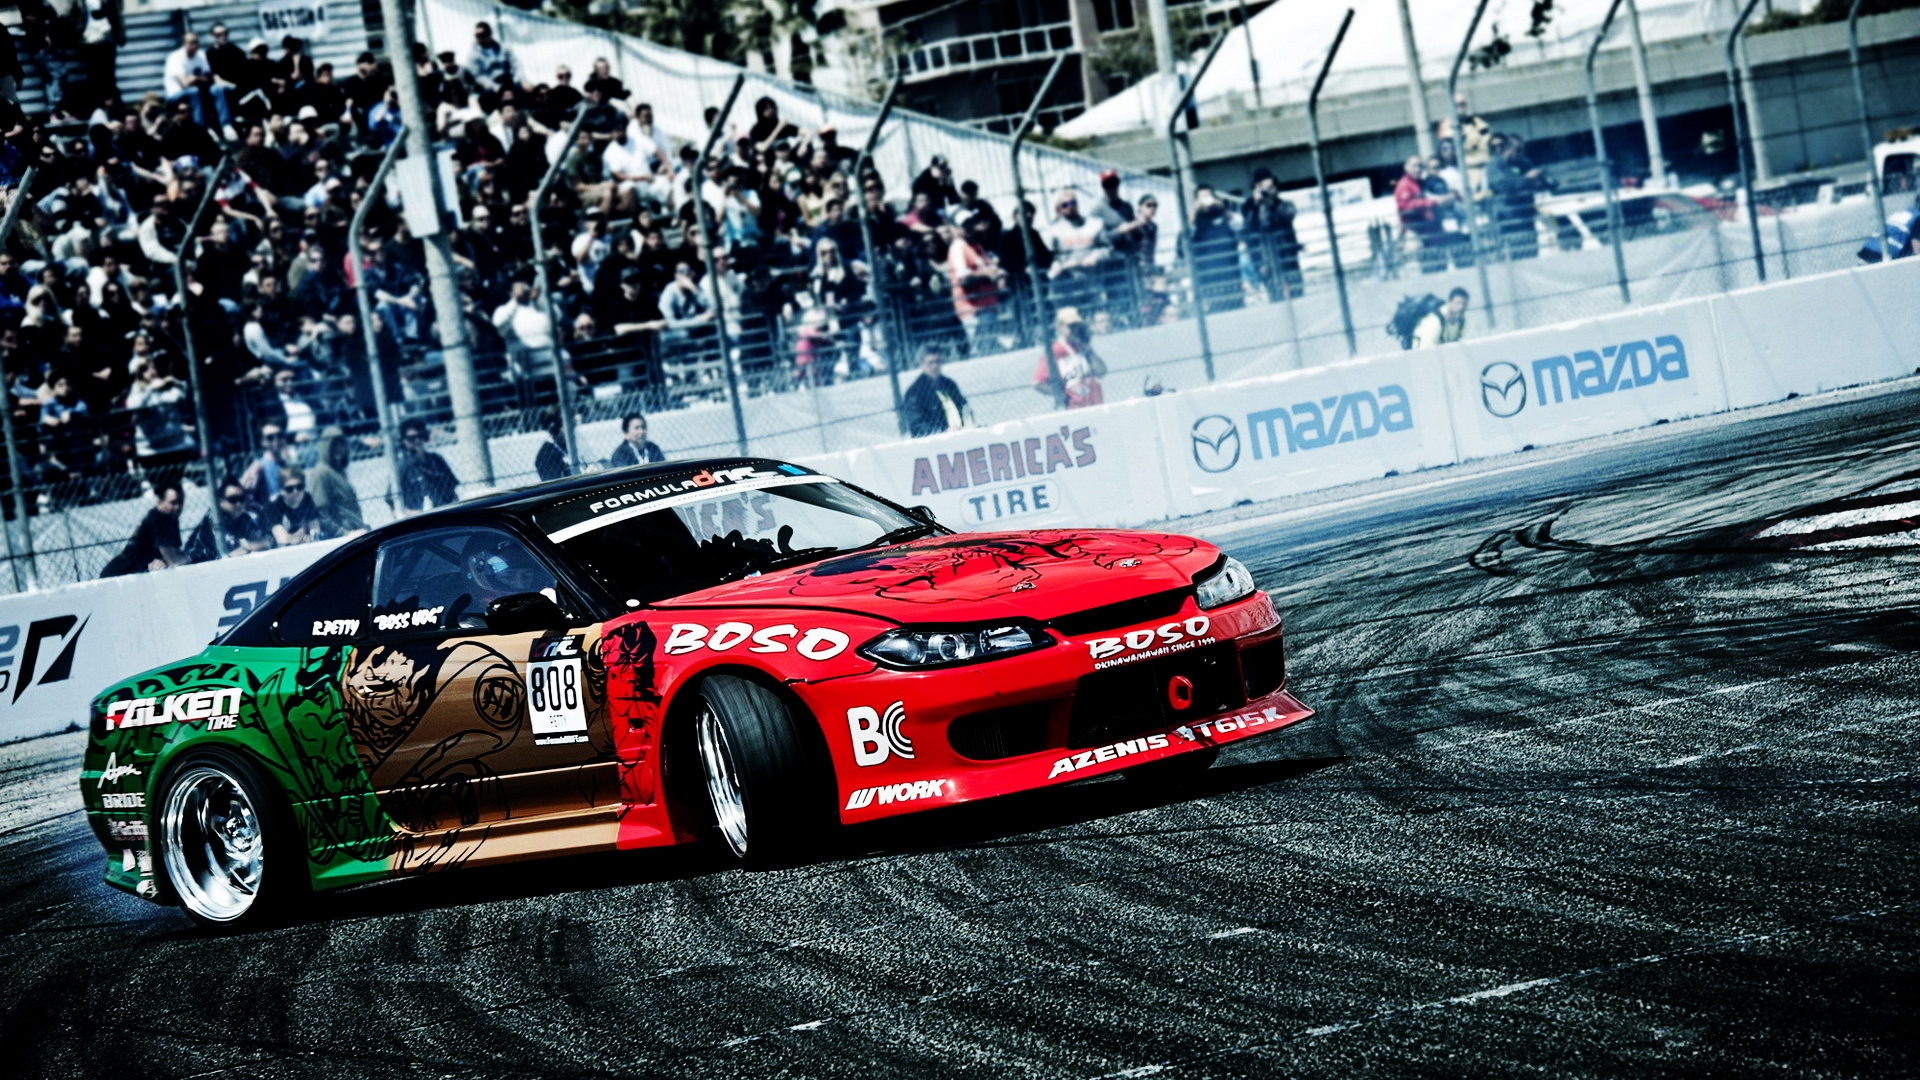 Nissan Silvia S14 Wallpaper Awesome Resolution #qrix0ly8